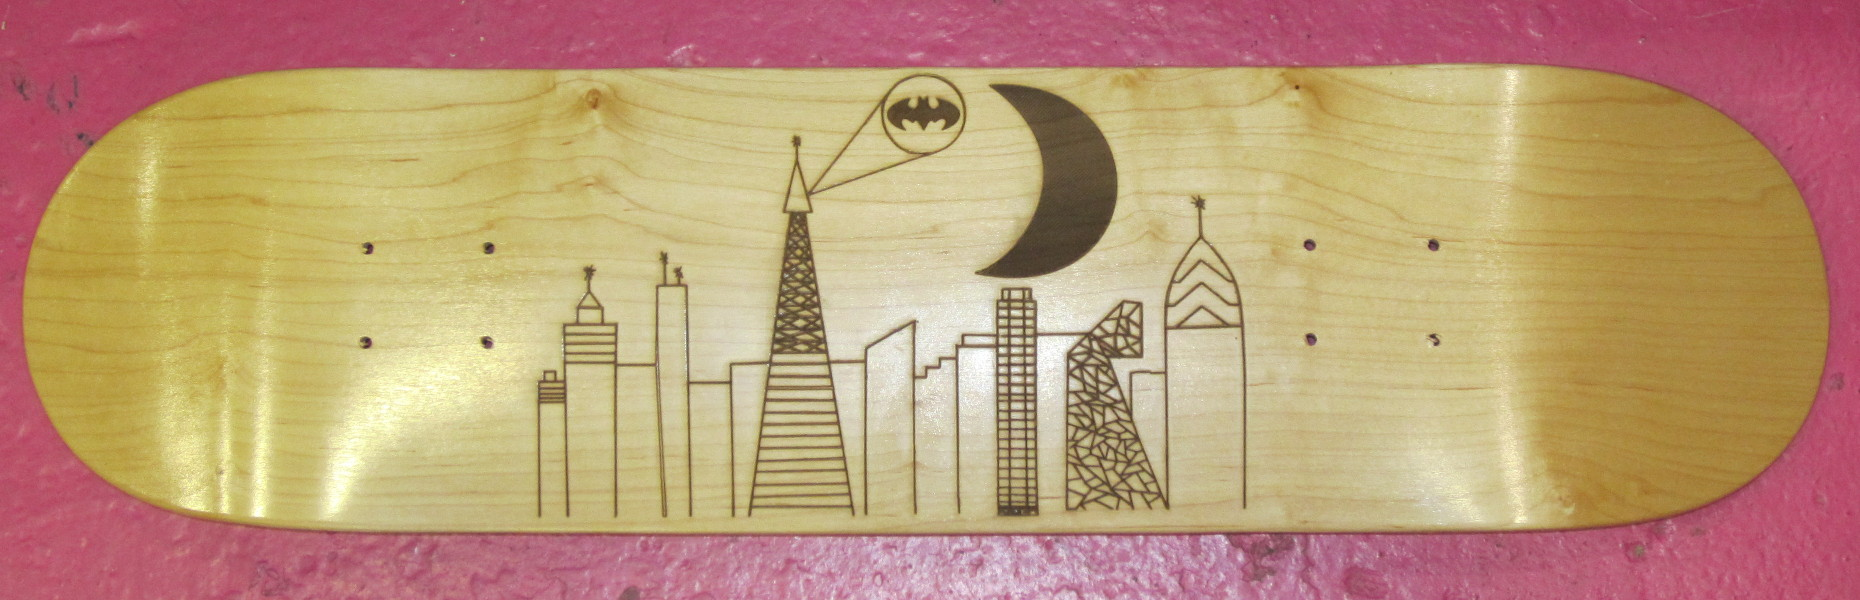 City Scape Laser Engraved Skateboard